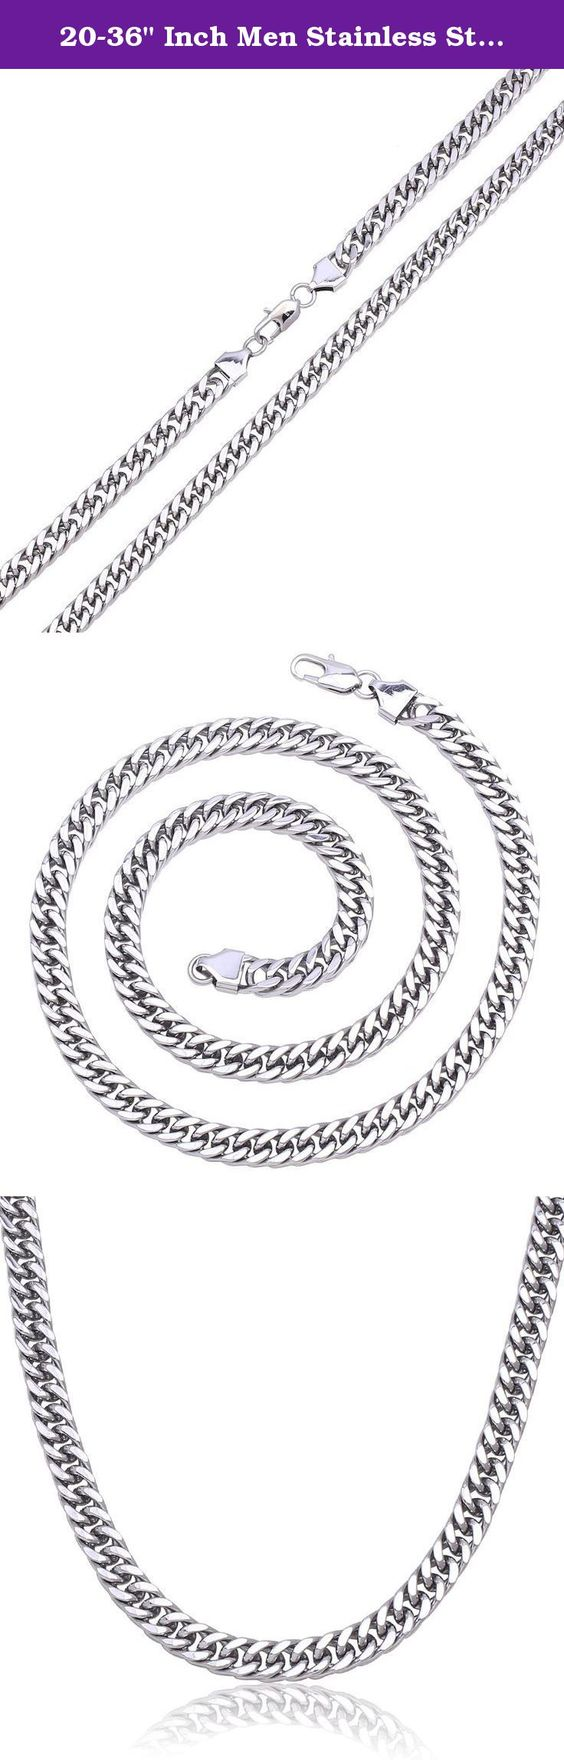 """20-36"""" Inch Men Stainless Steel Silver 10mm Heavy Miami Cuban Curb Necklace Chain Link Fashion Jewelry (36 Inches). Silver Color Necklace Available in 20"""" to 36"""". Silver Color Necklace Width:10 mm. You can wear it in any occasion. 100% Stainless Steel. High Polished."""